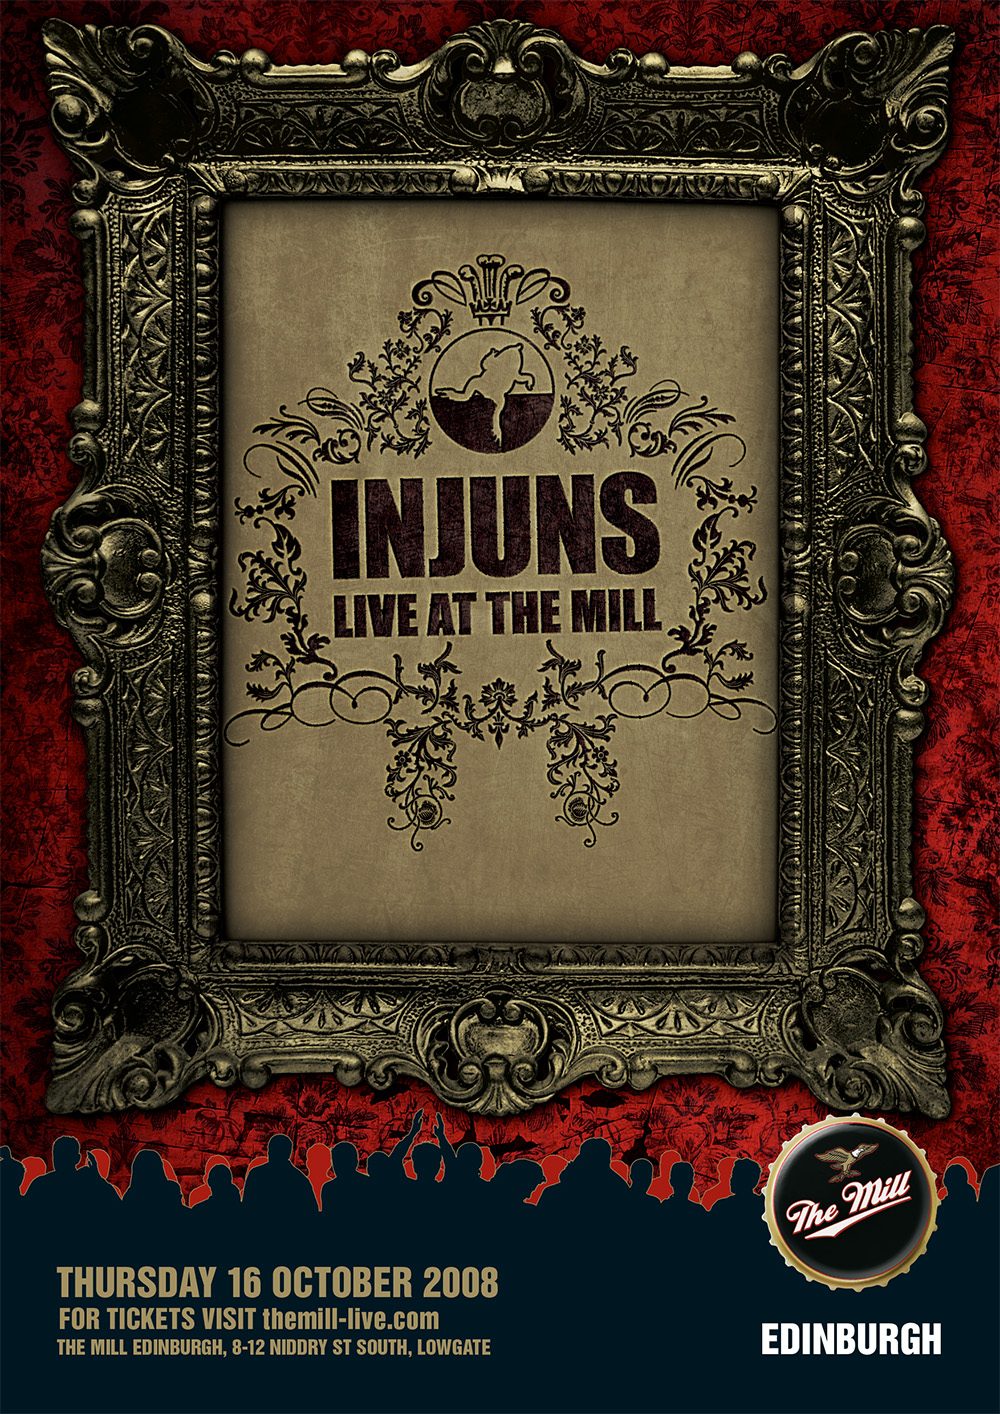 New Injuns Poster copy.jpg